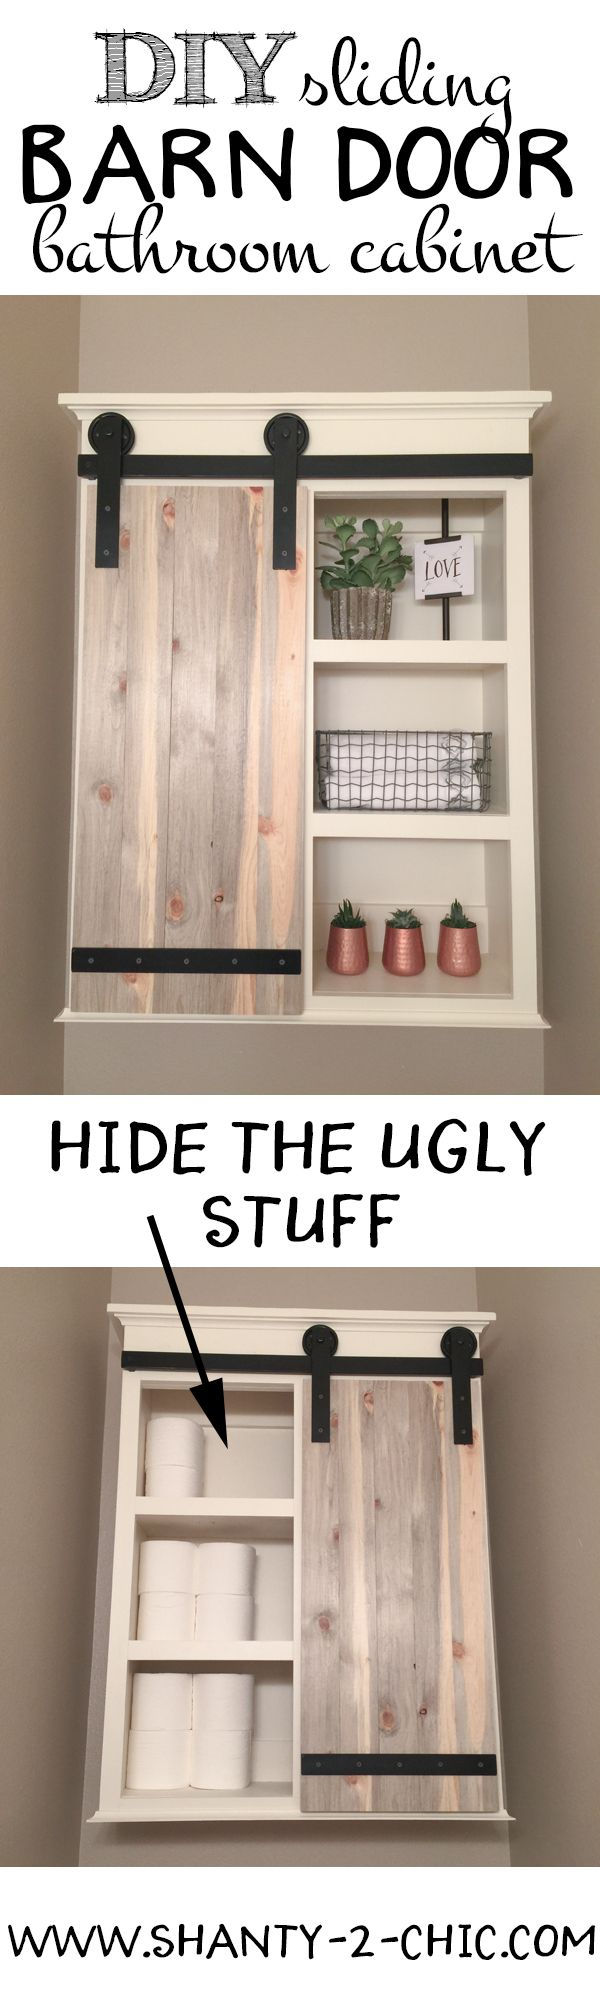 build a custom sliding barn door storage cabinet perfect for storage toilet paper and other